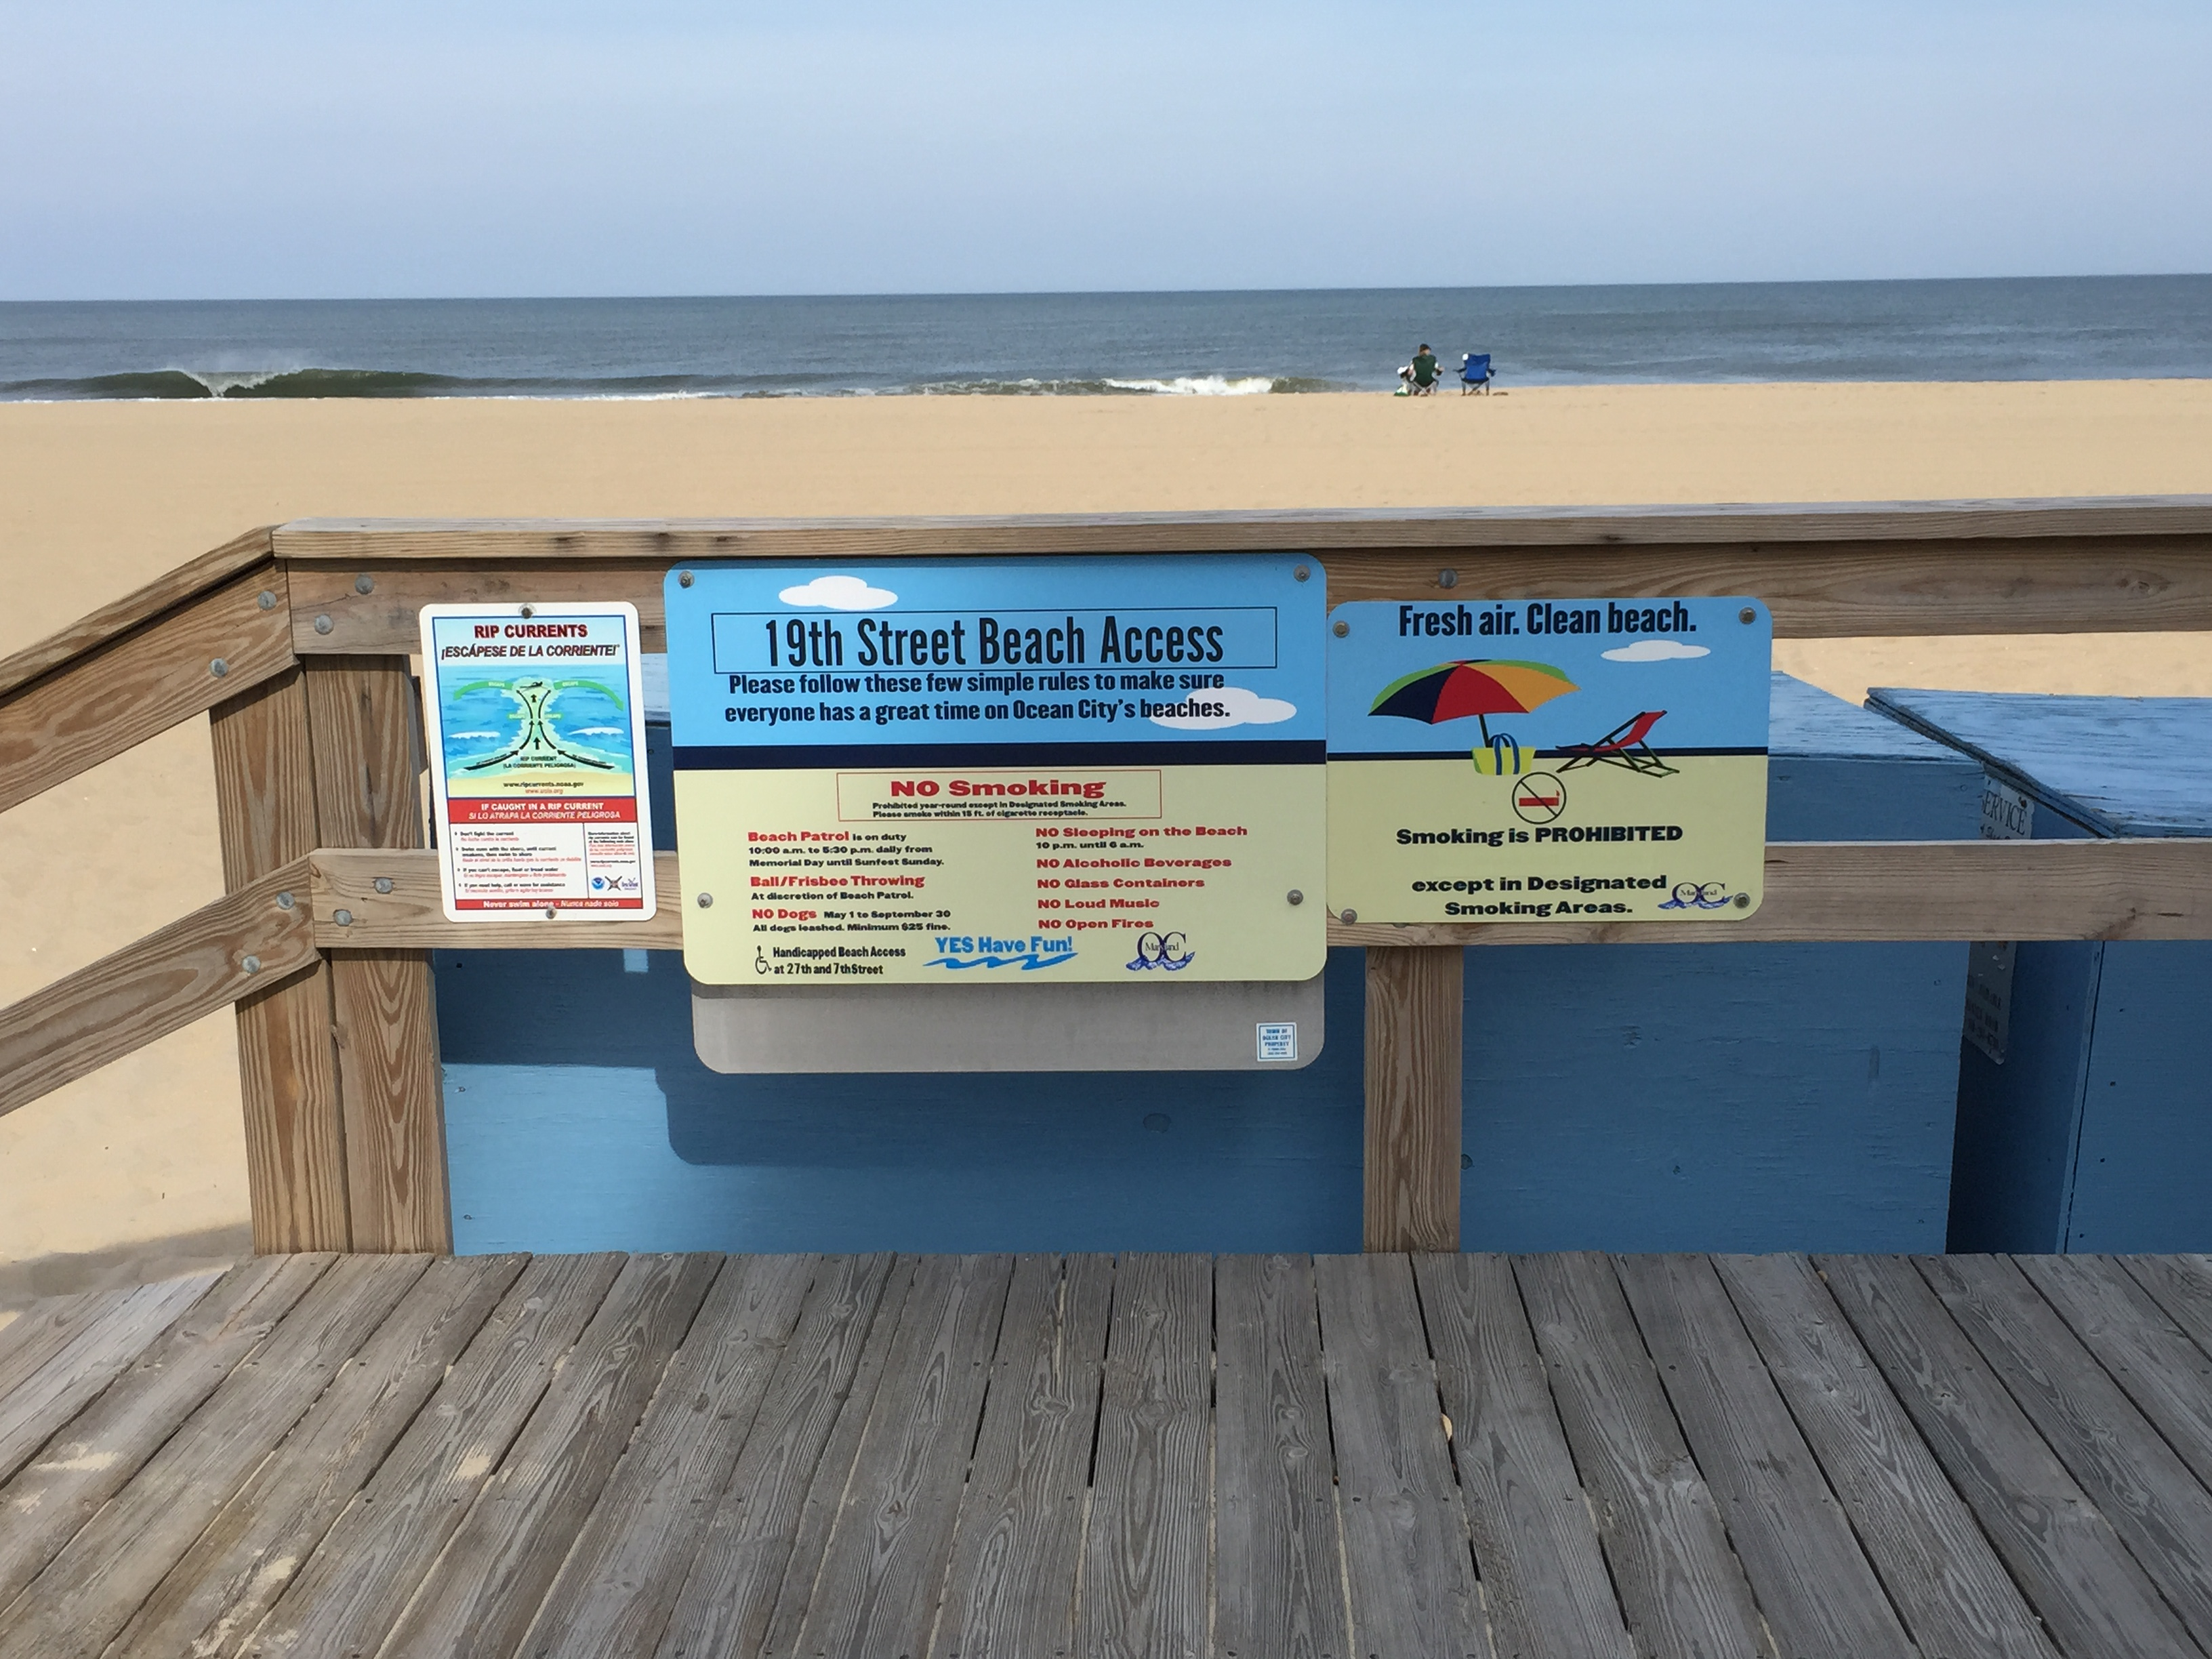 Memorial Day weekend true test for Ocean City's smoking restrictions